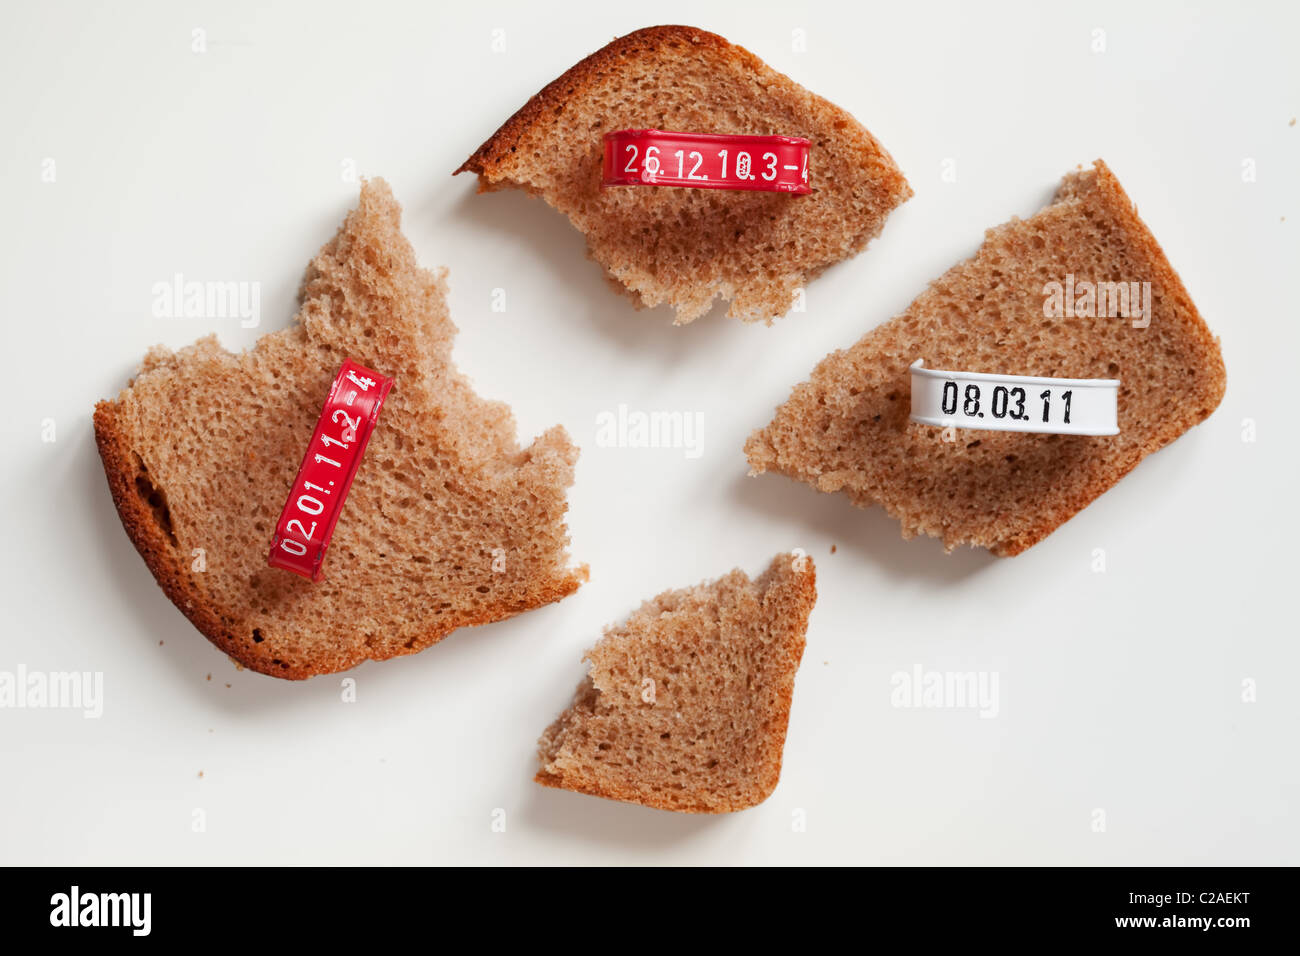 Four pieces of bread slice and seals with printed production date - Stock Image